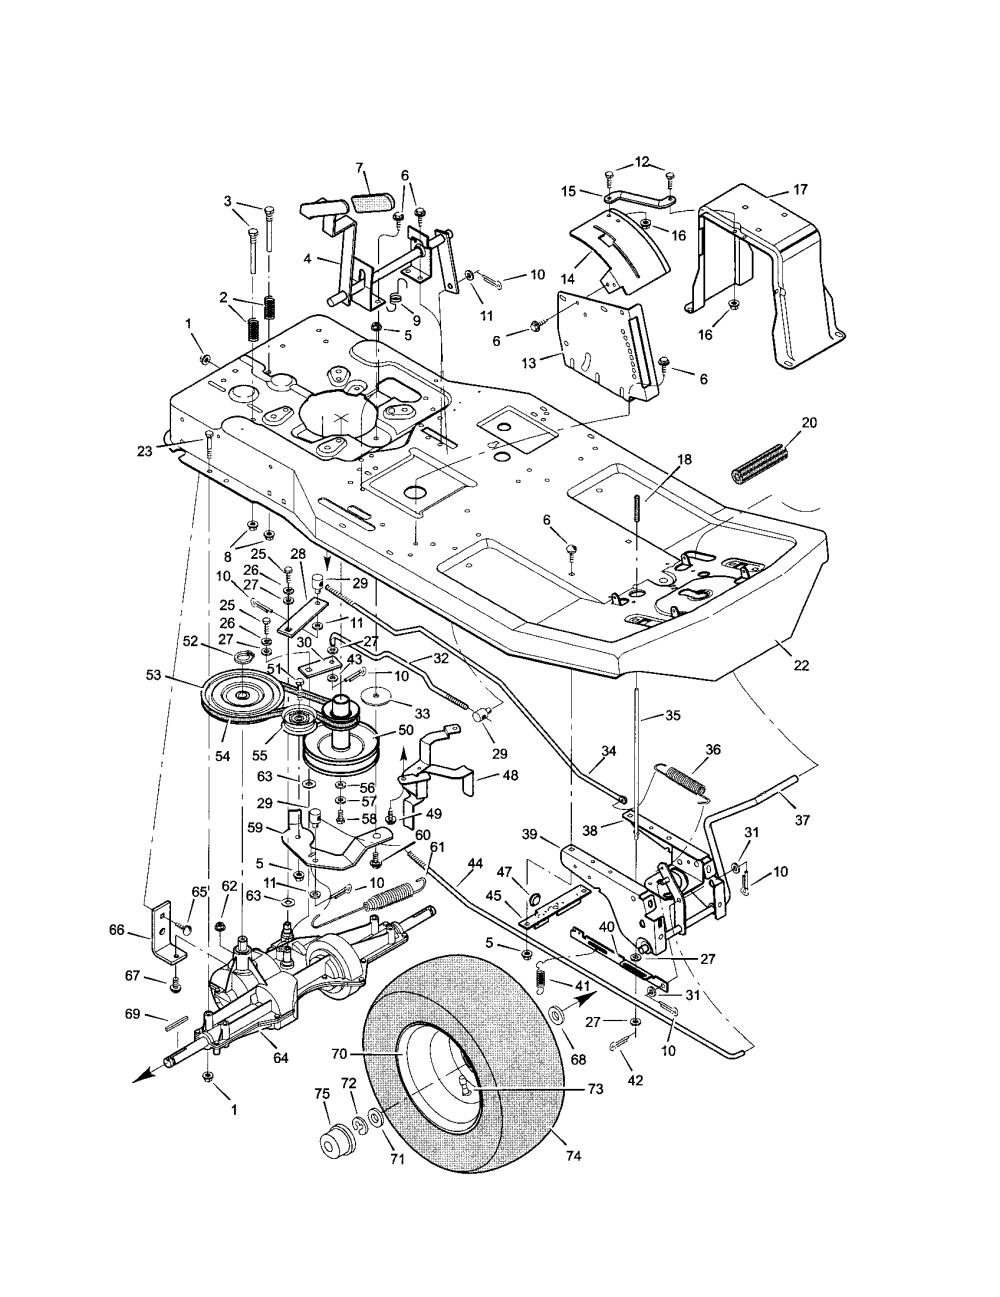 medium resolution of looking for murray model 30550h rear engine riding mower repair need a diagram to replace the belt on a murray riding lawn